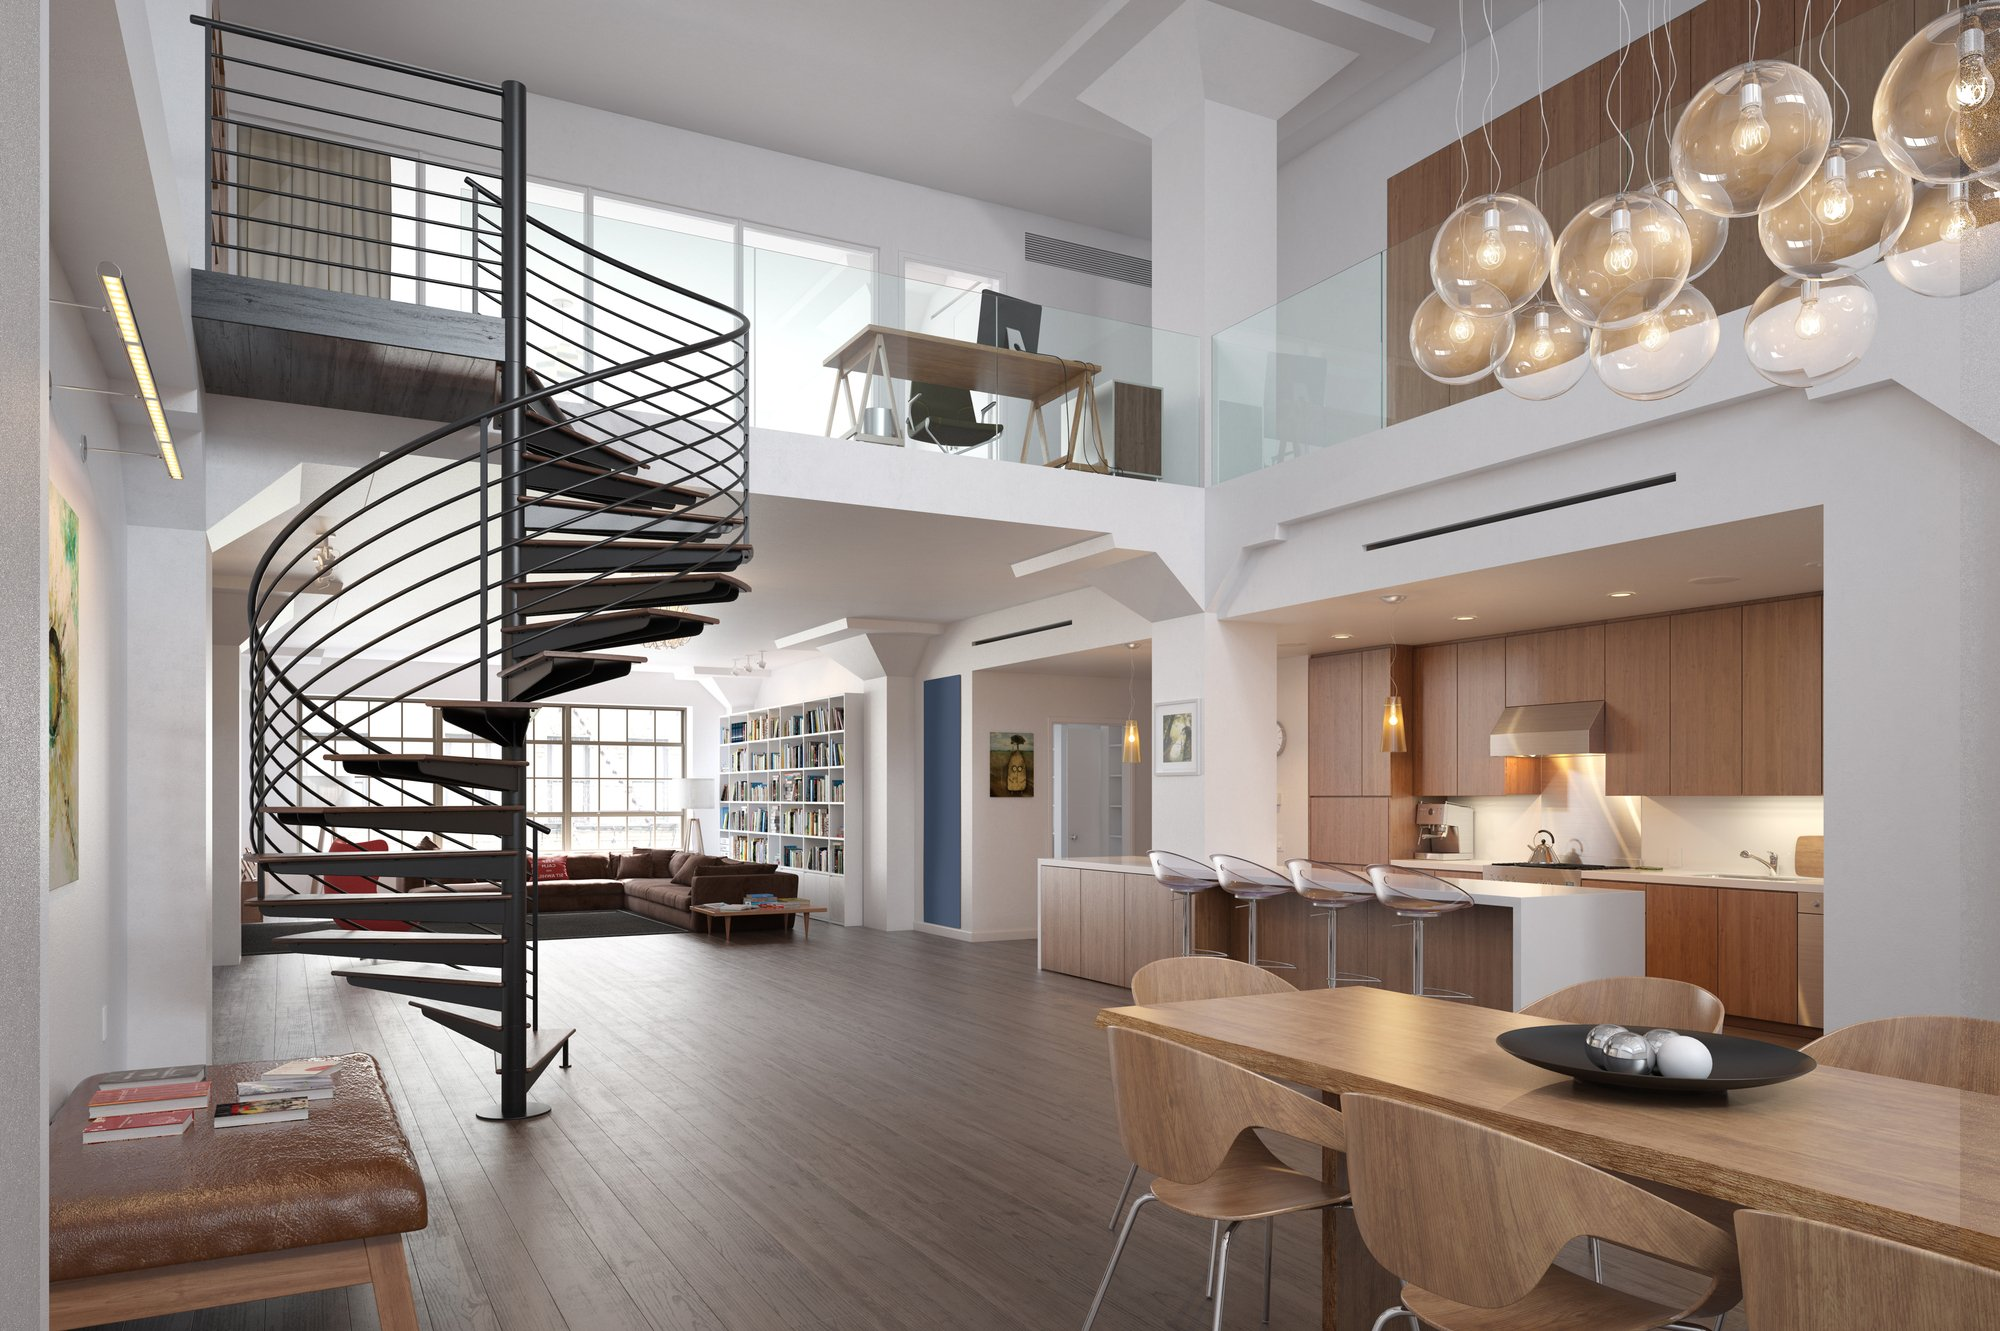 4 Clever Loft Conversion Ideas You Might Want to Consider